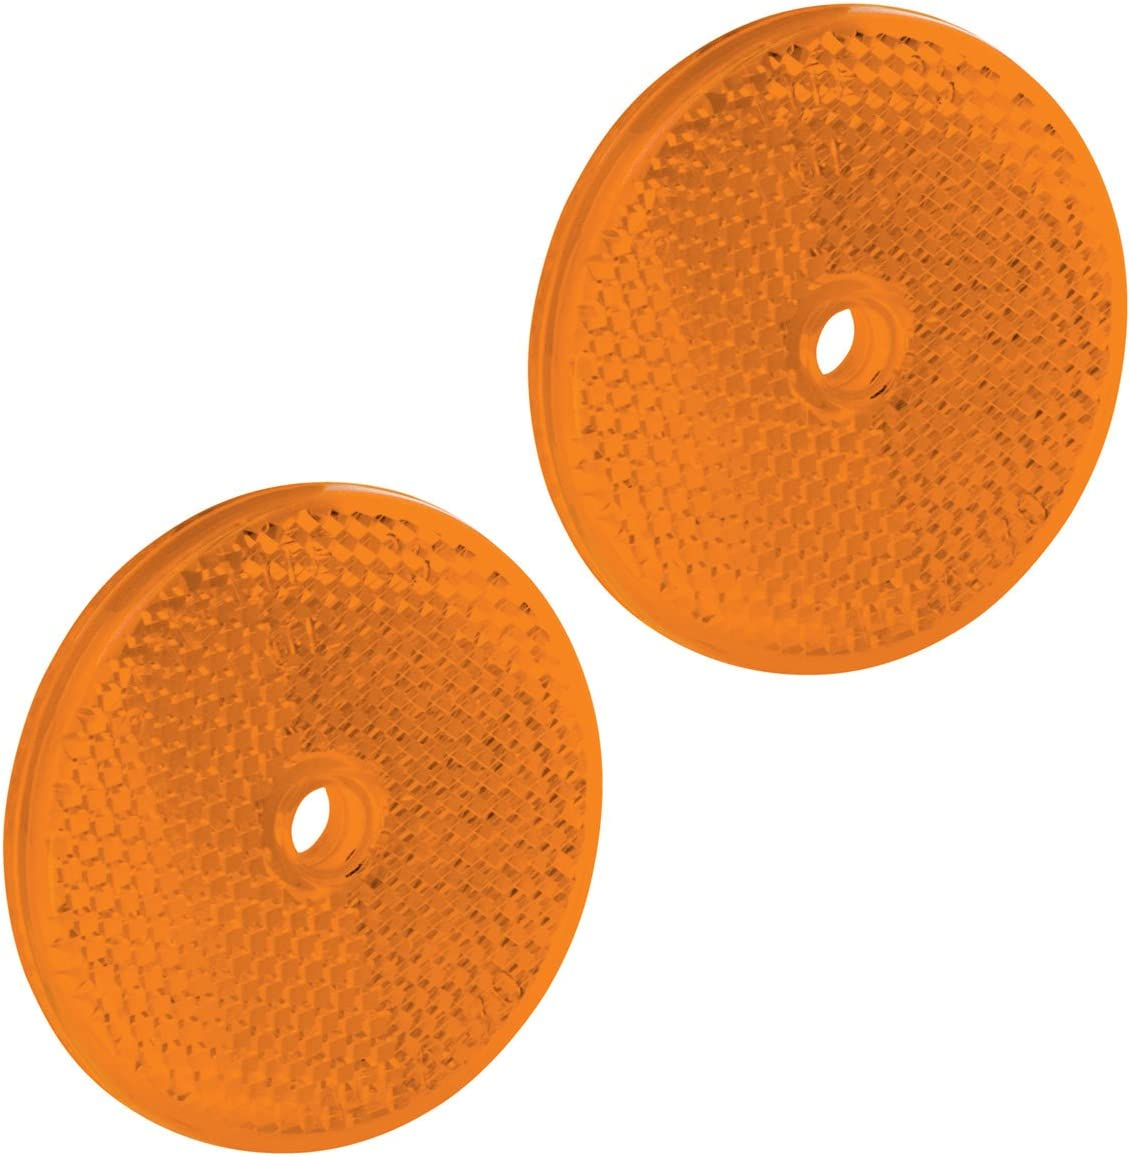 Bargman 74-71-175 Class A 2-3//16 Round Amber Reflector with Center Mounting Hole 2 Pack